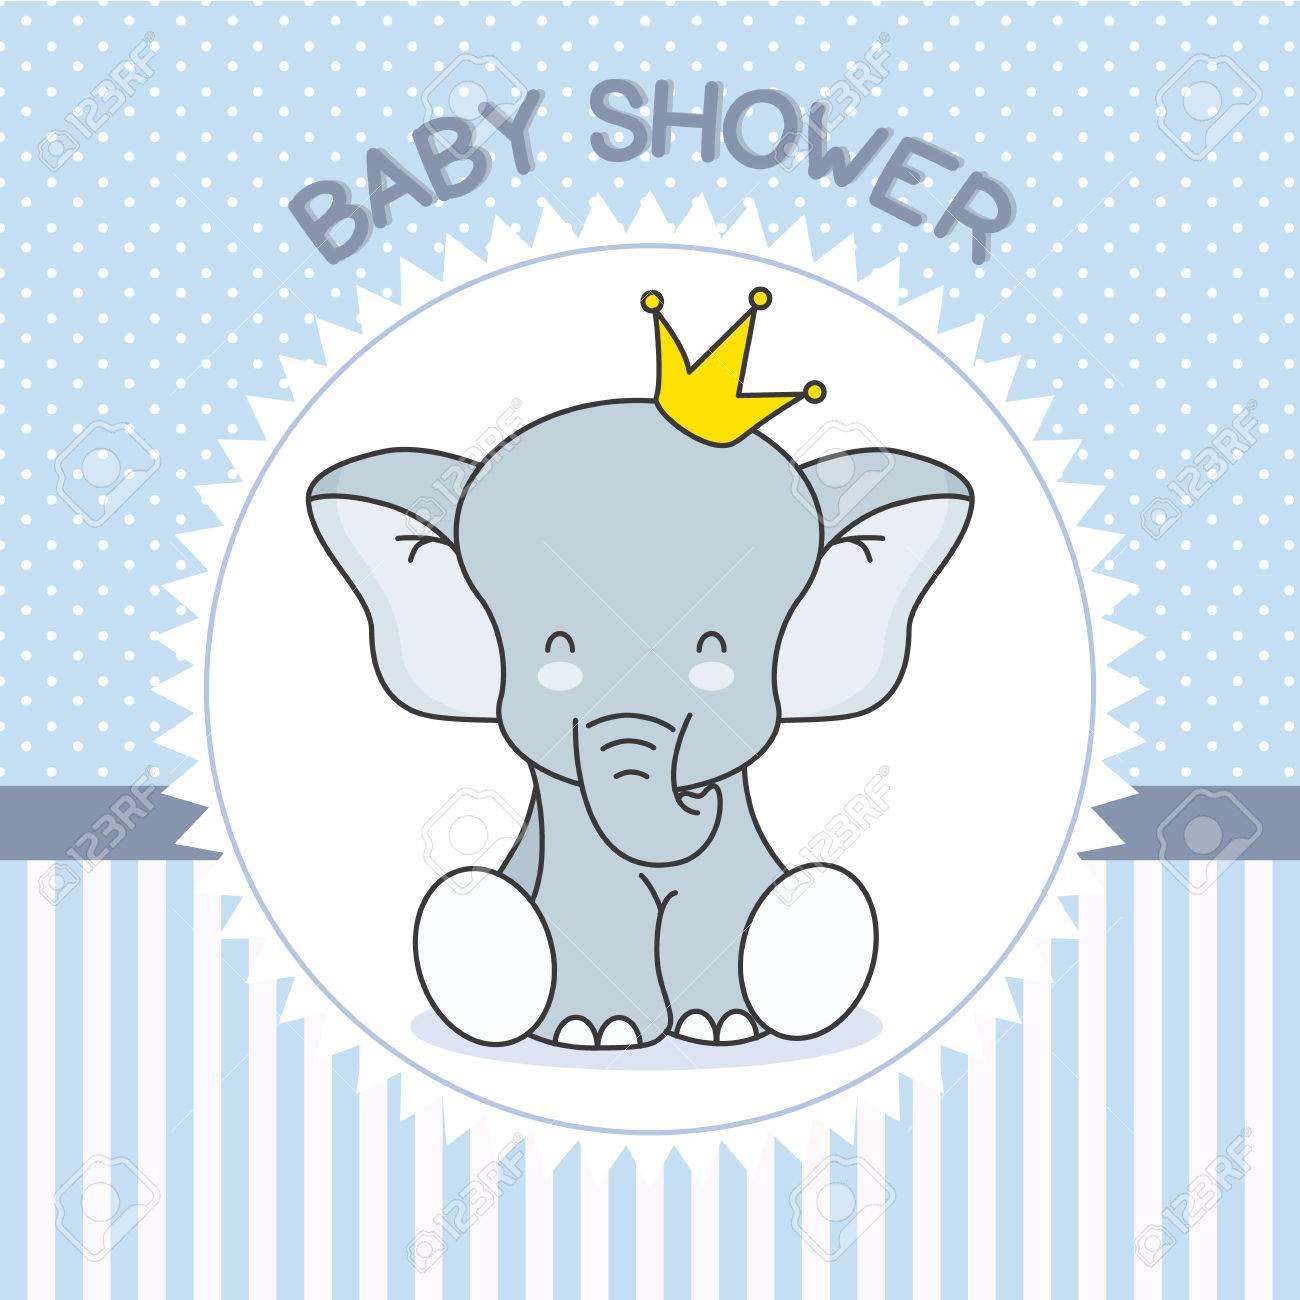 baby shower boy. Cute Elephant with crown.